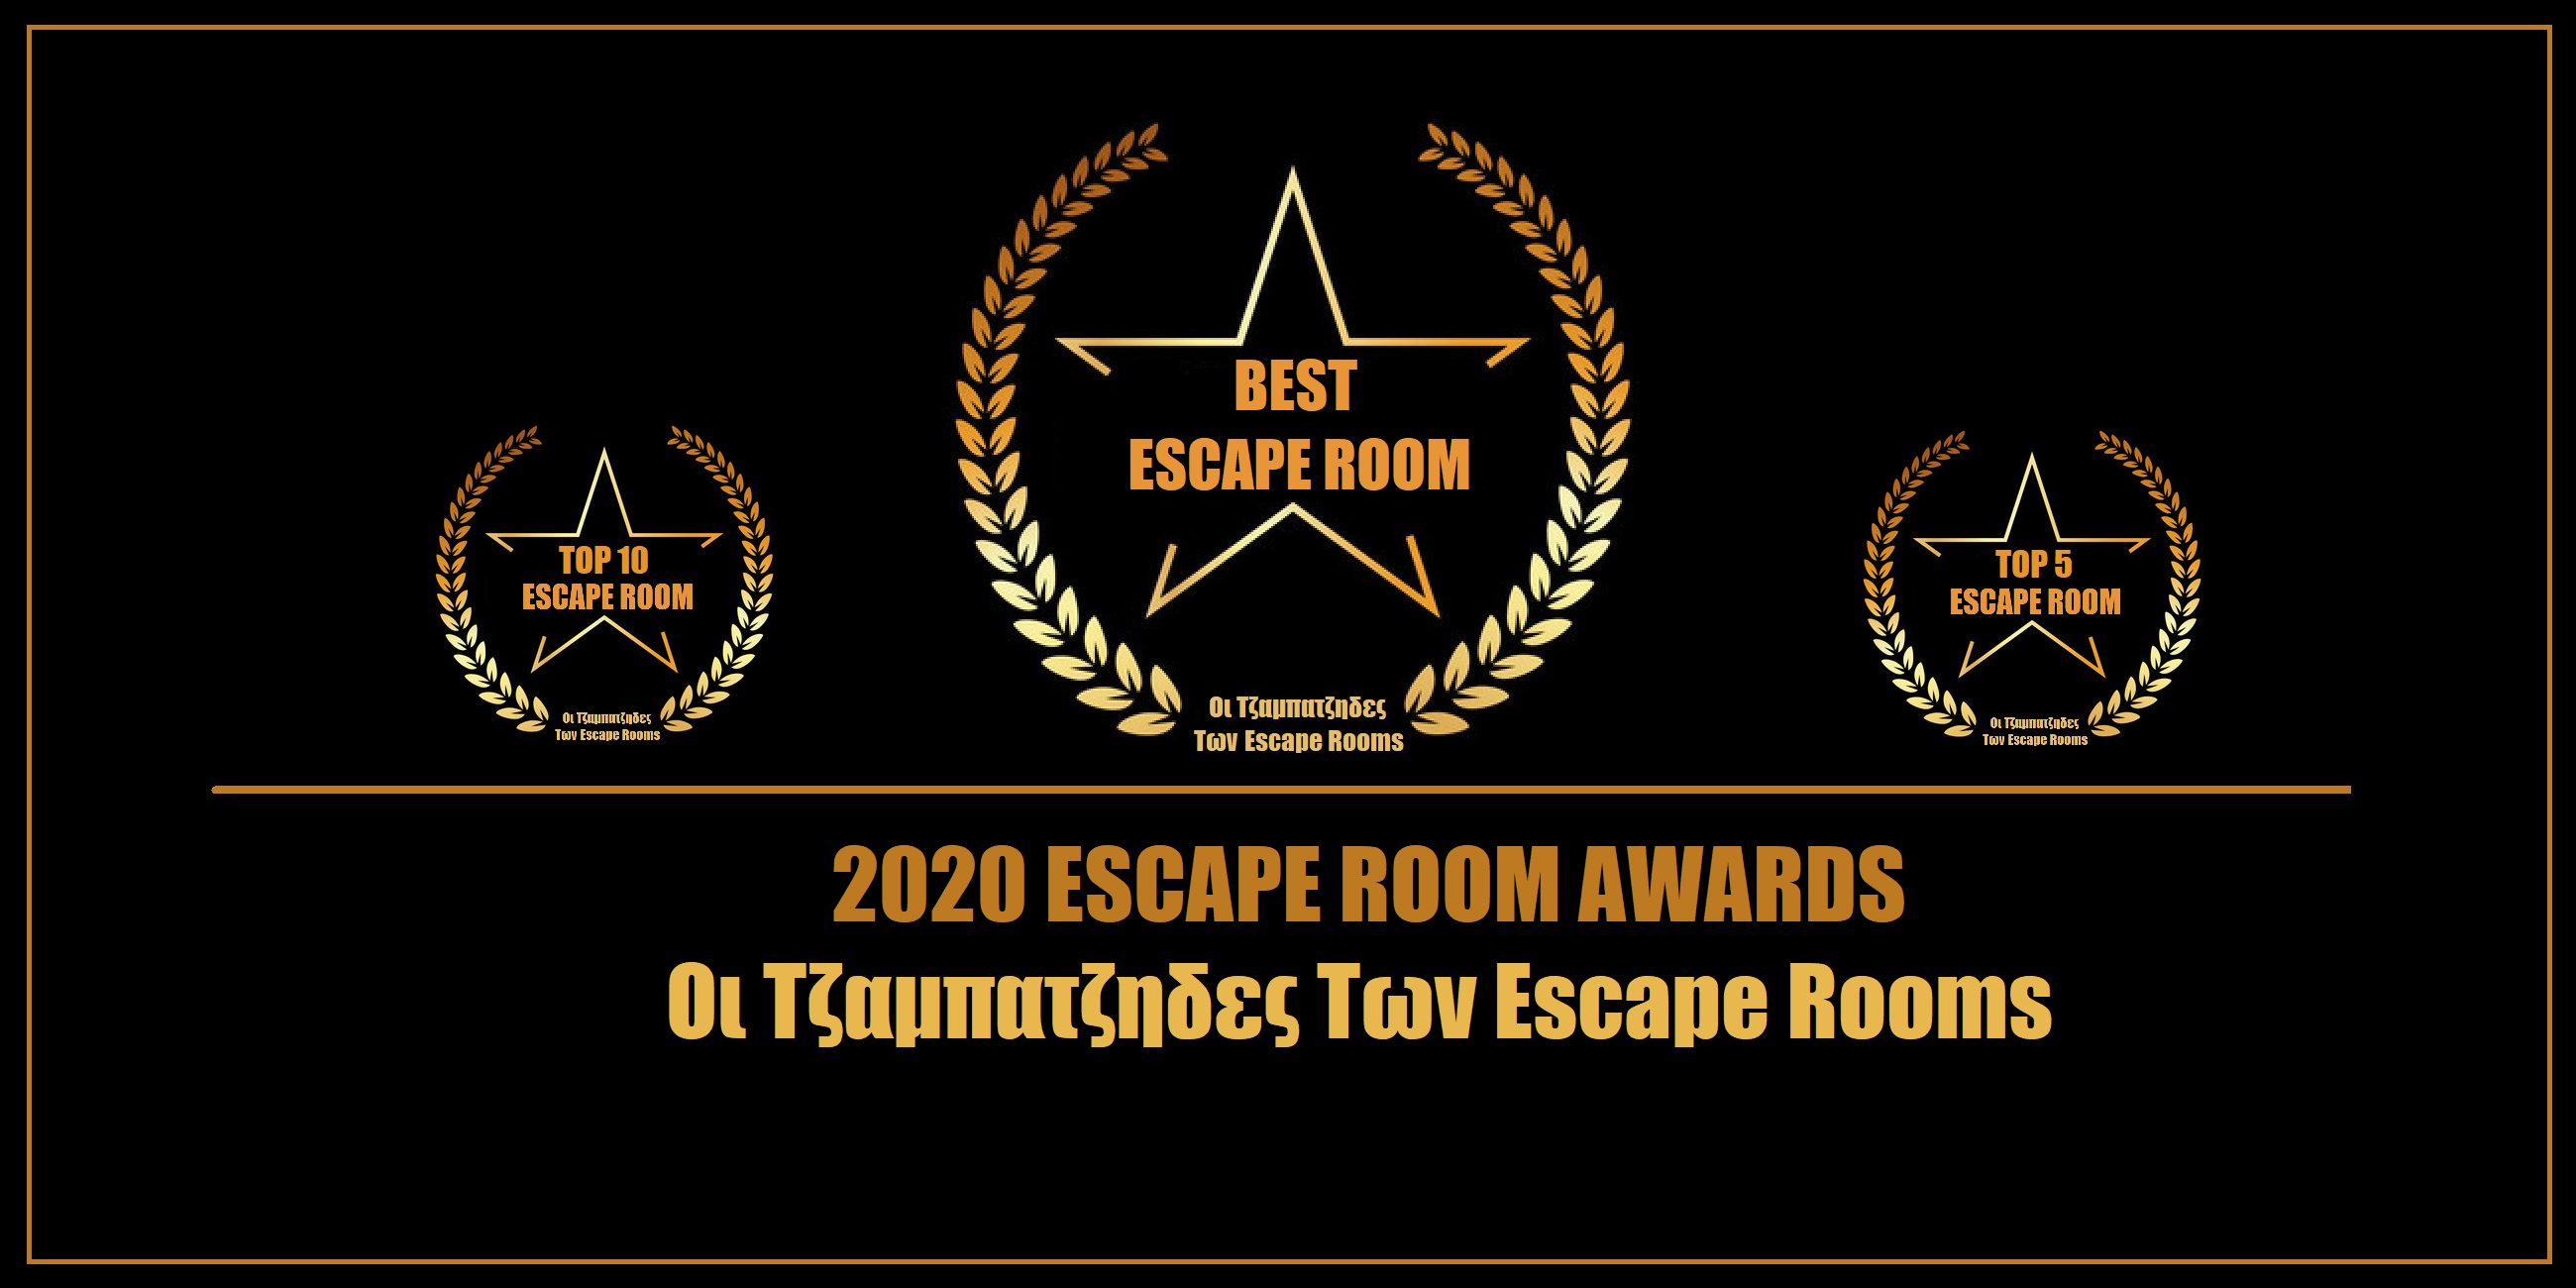 2020 Escape Rooms Awards